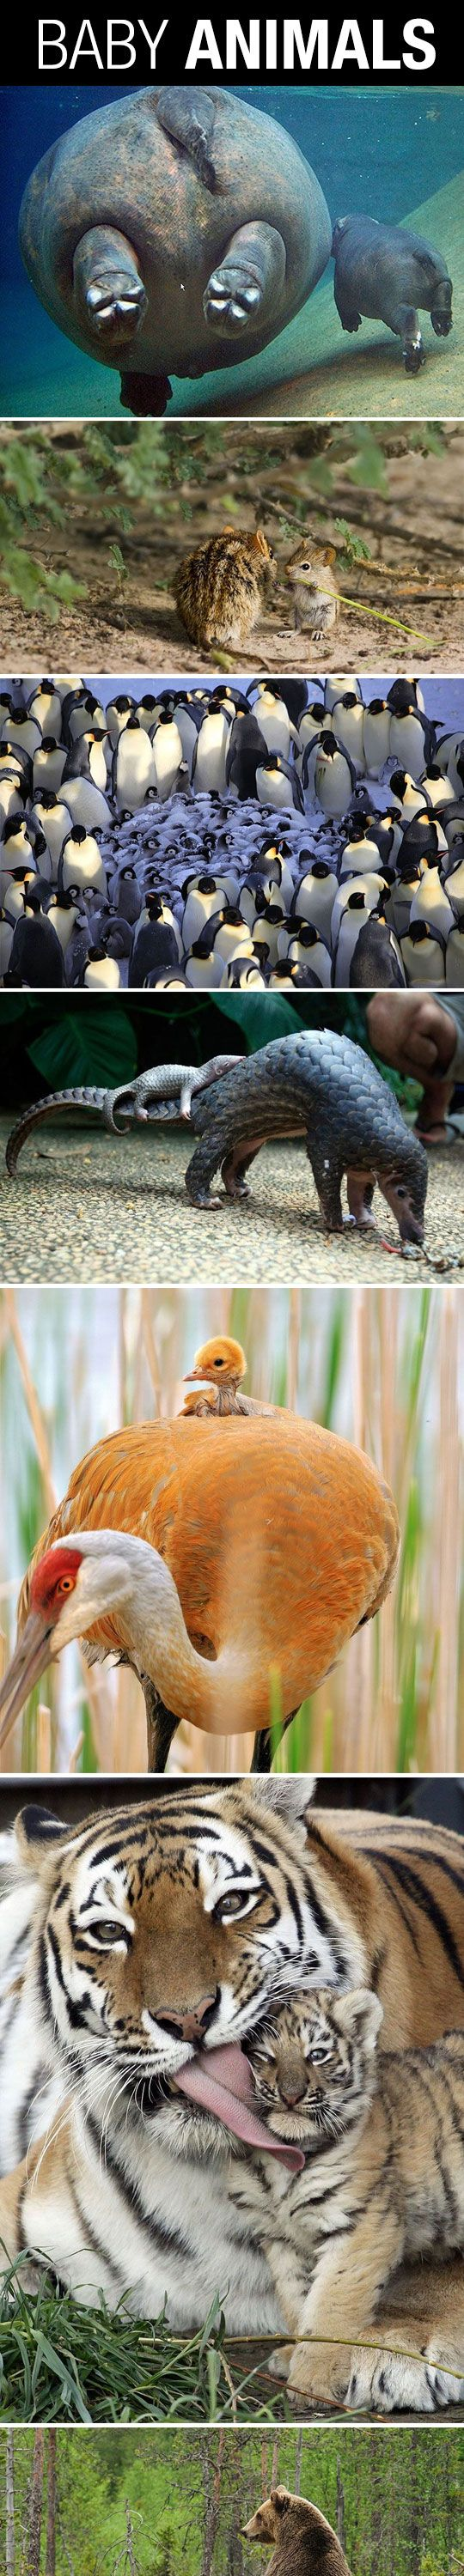 Just Baby Animals Being Adorable